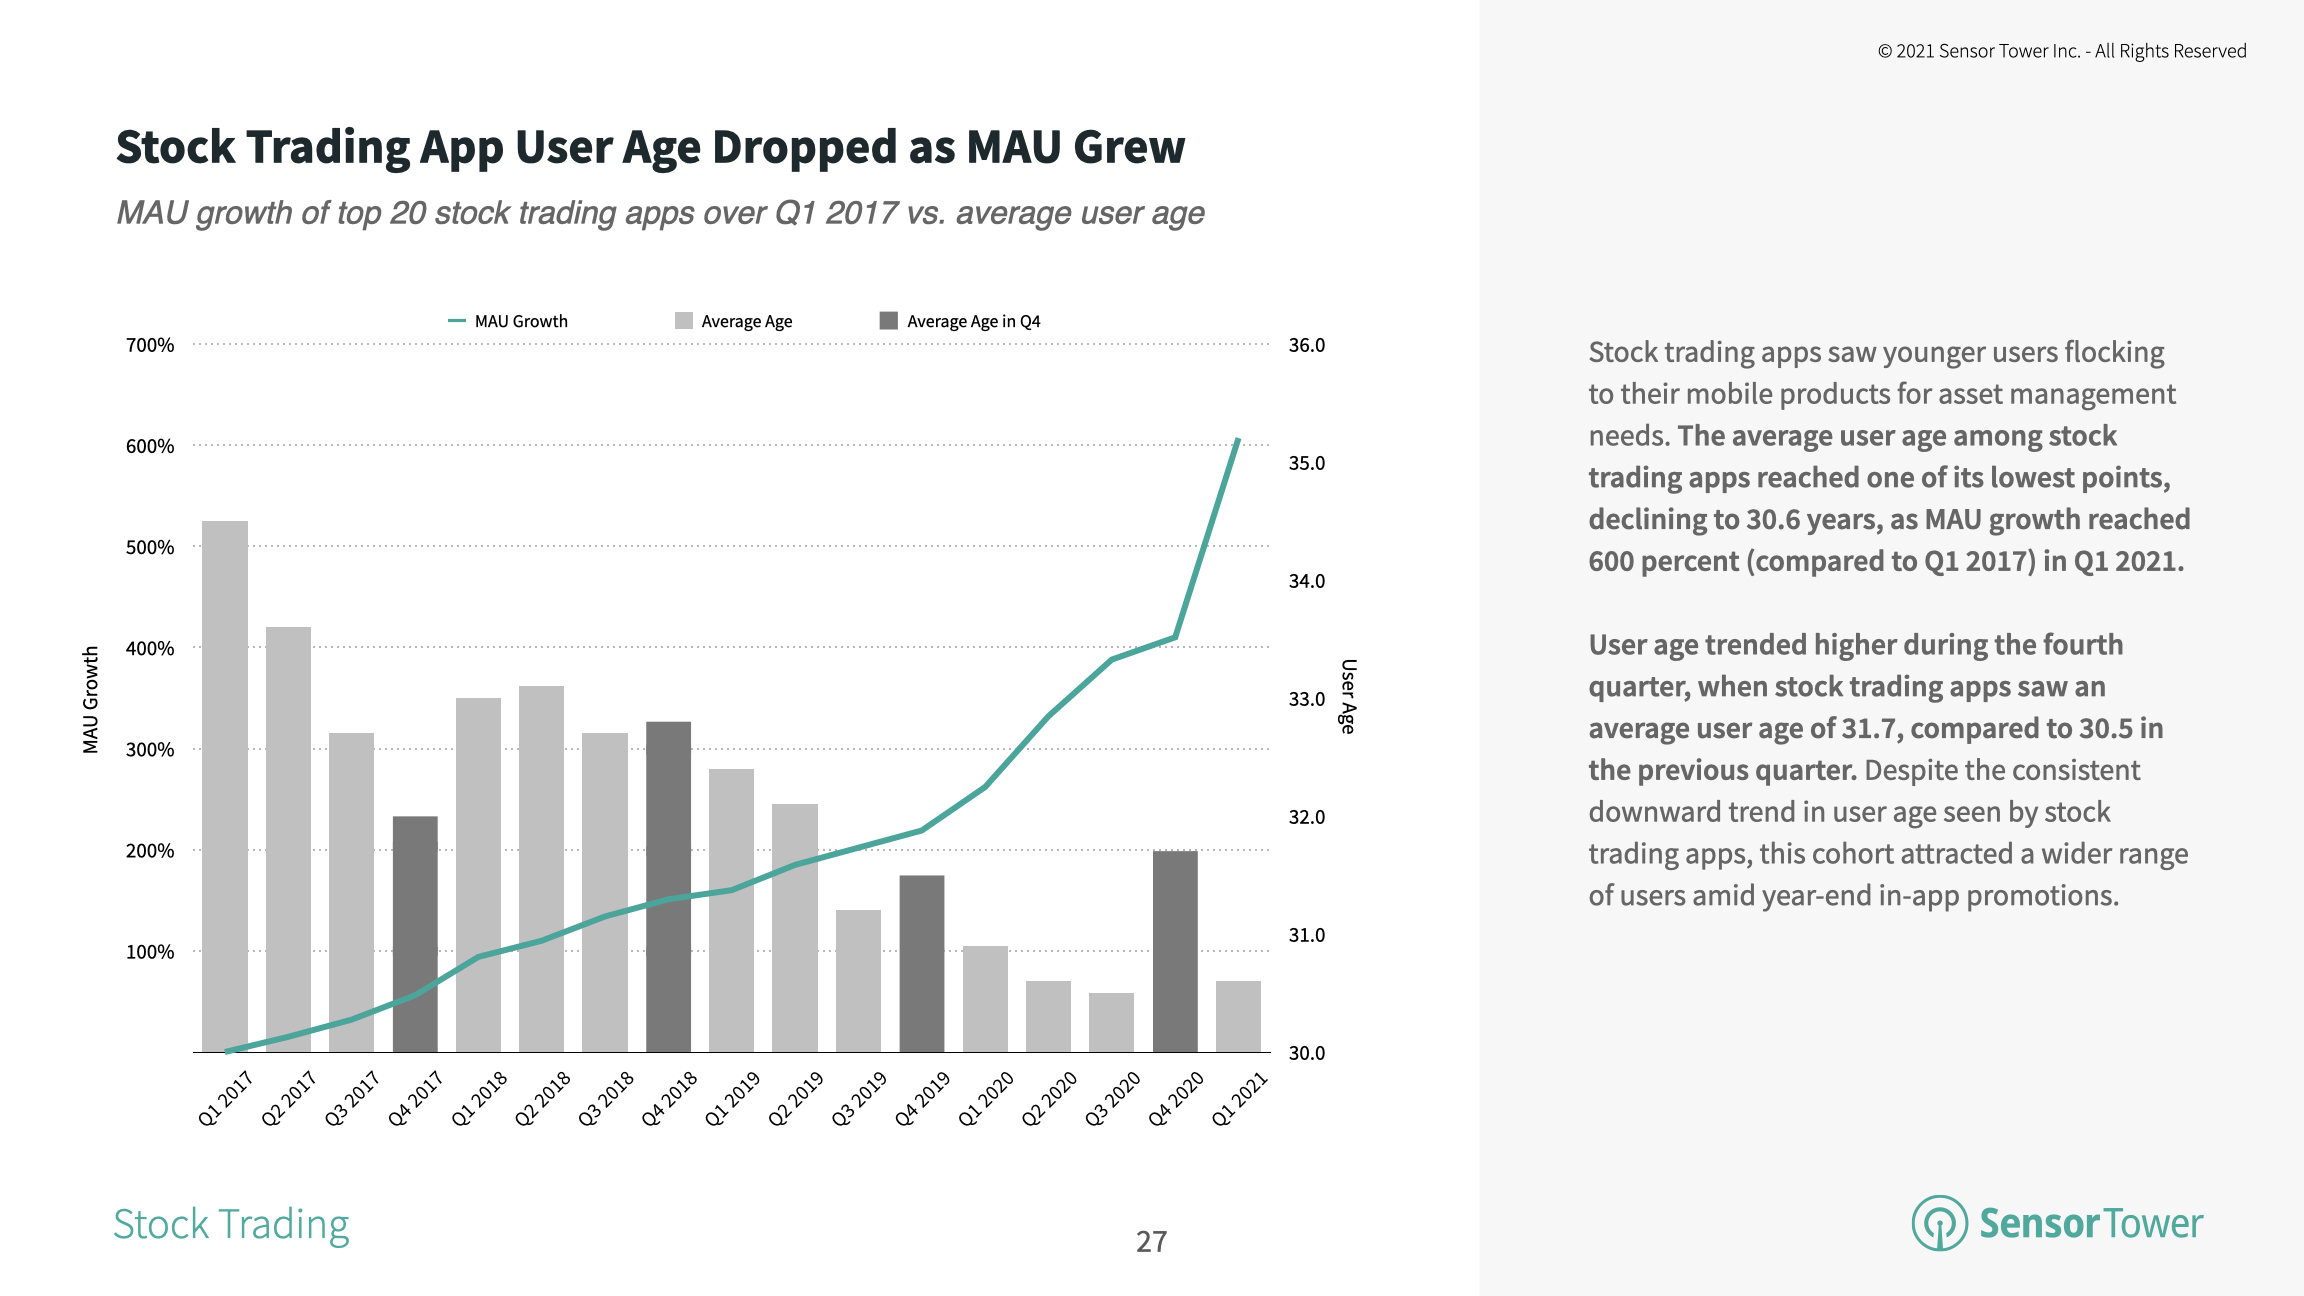 The average user age of the top 20 stock trading apps fell to 30.6 in Q1 2021.